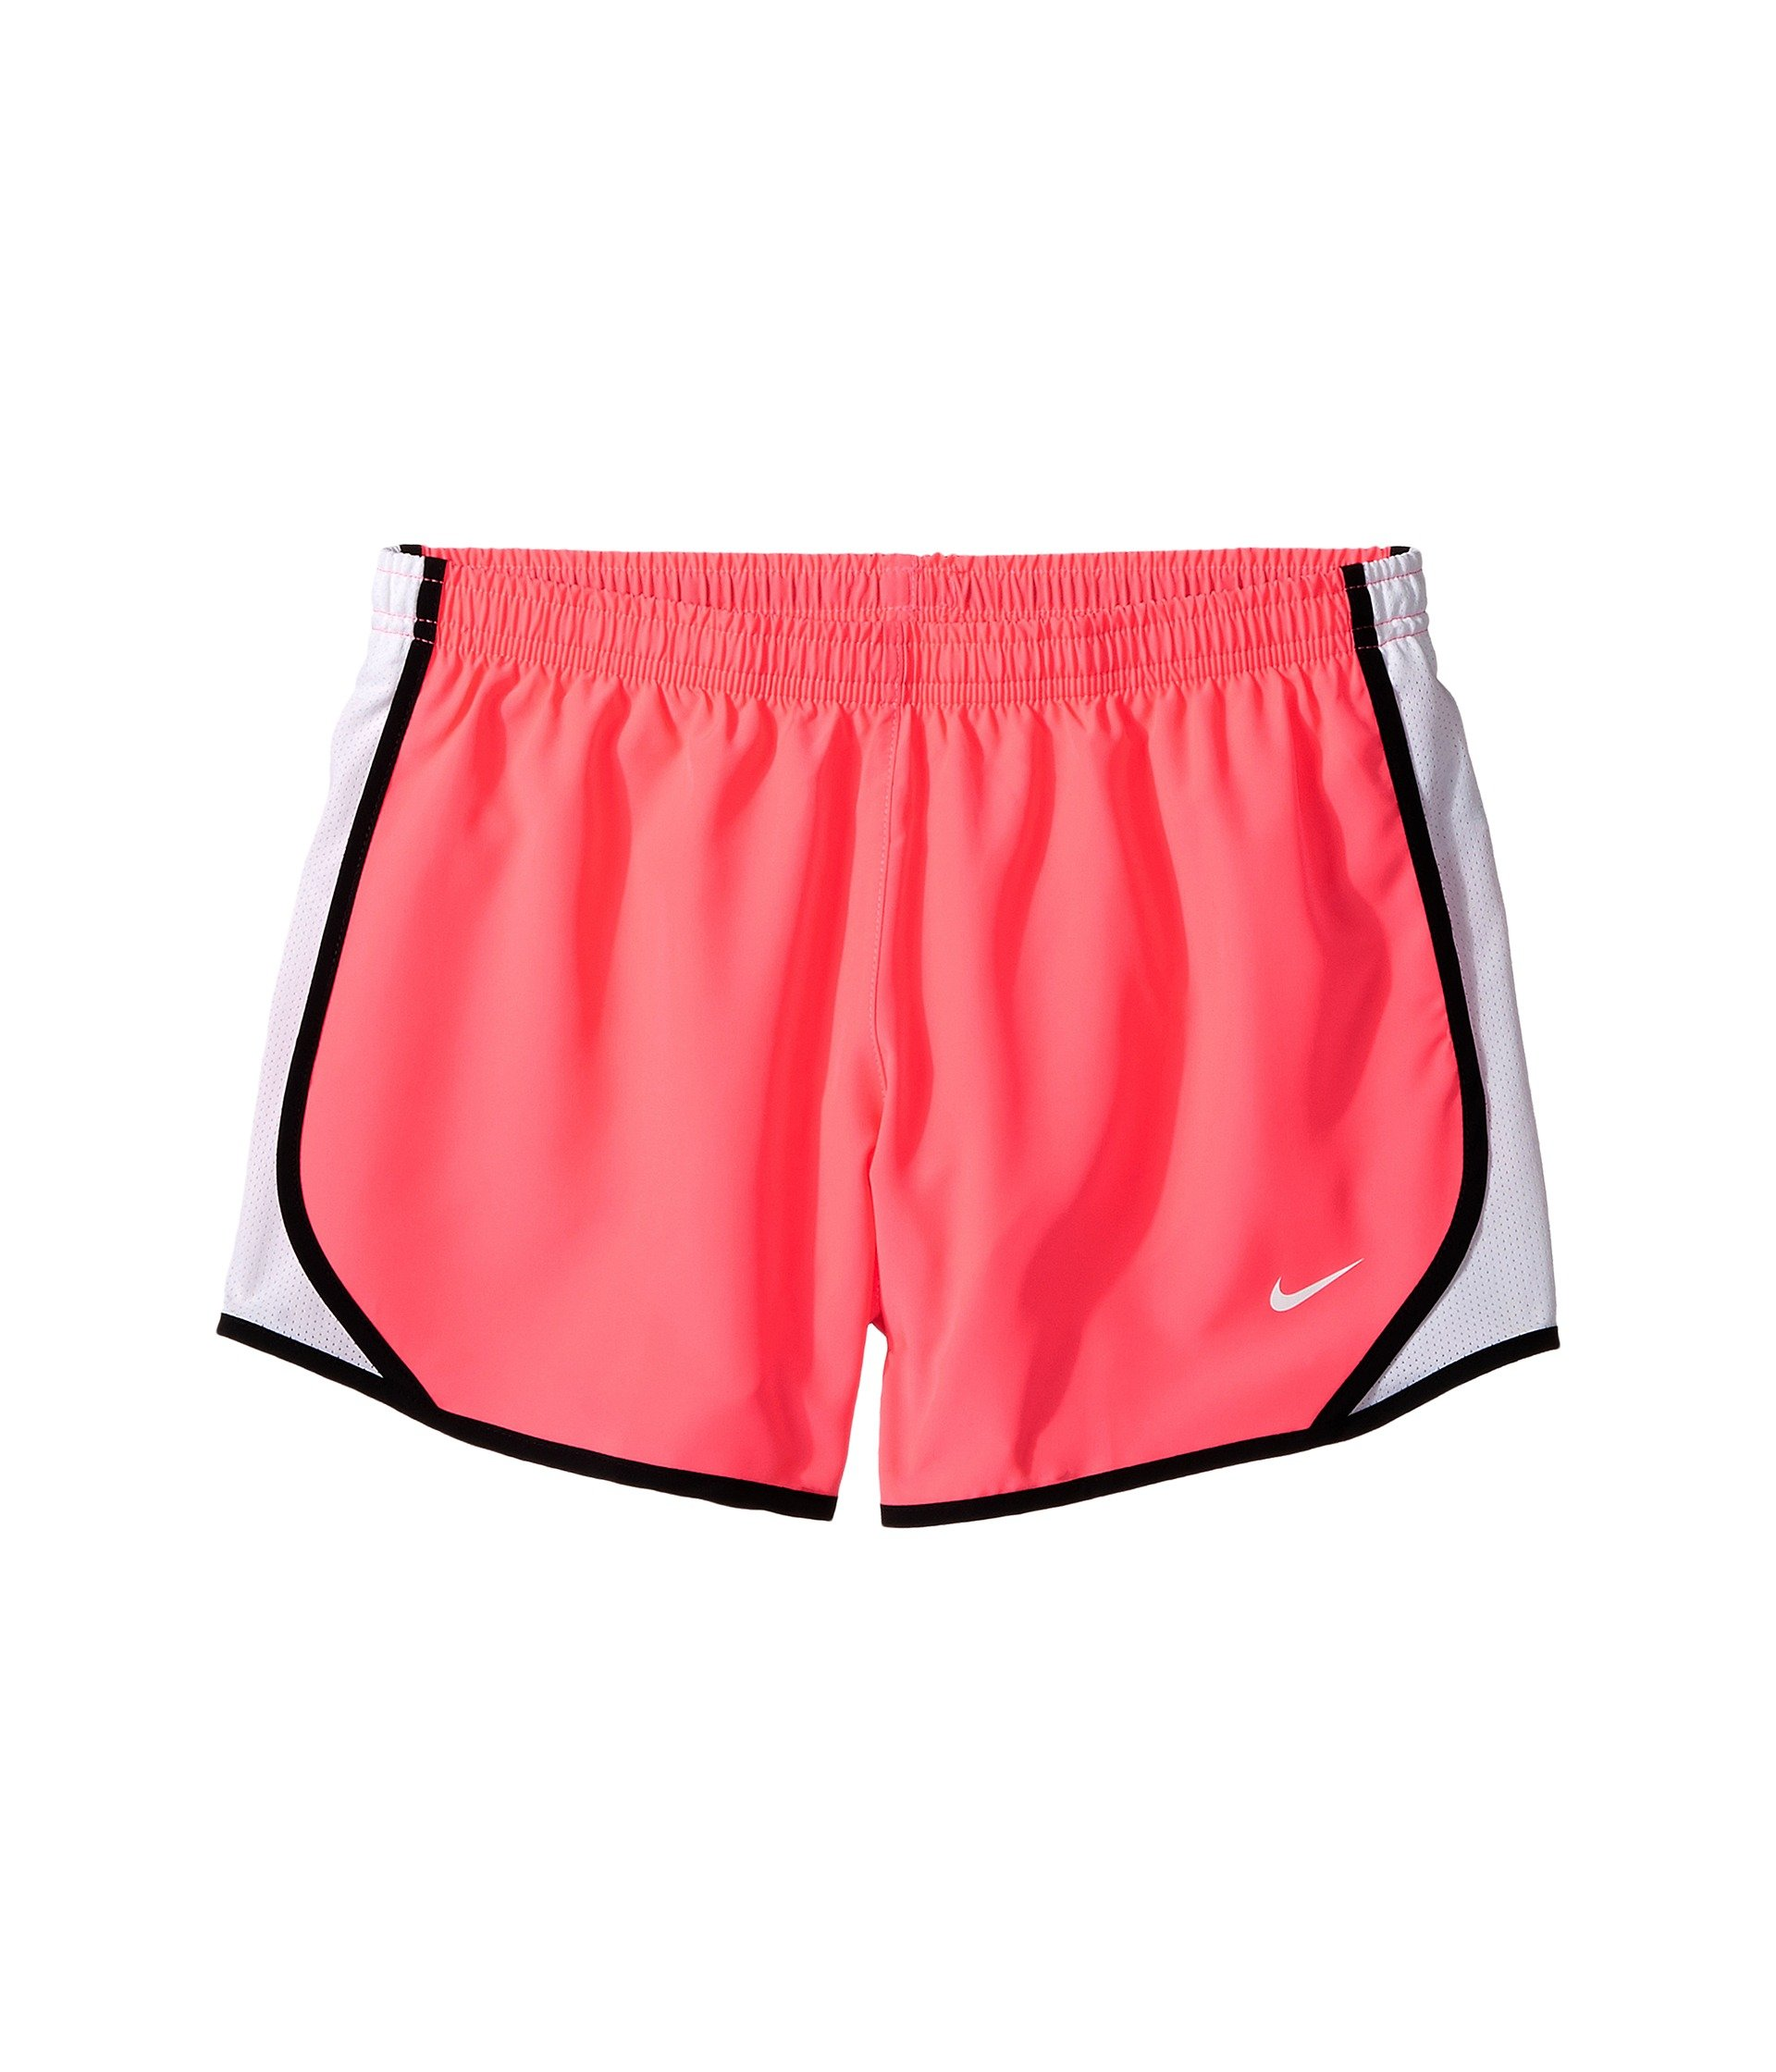 Nike Girl's Dry Tempo Running Short Racer Pink/White/Black Size Small by Nike